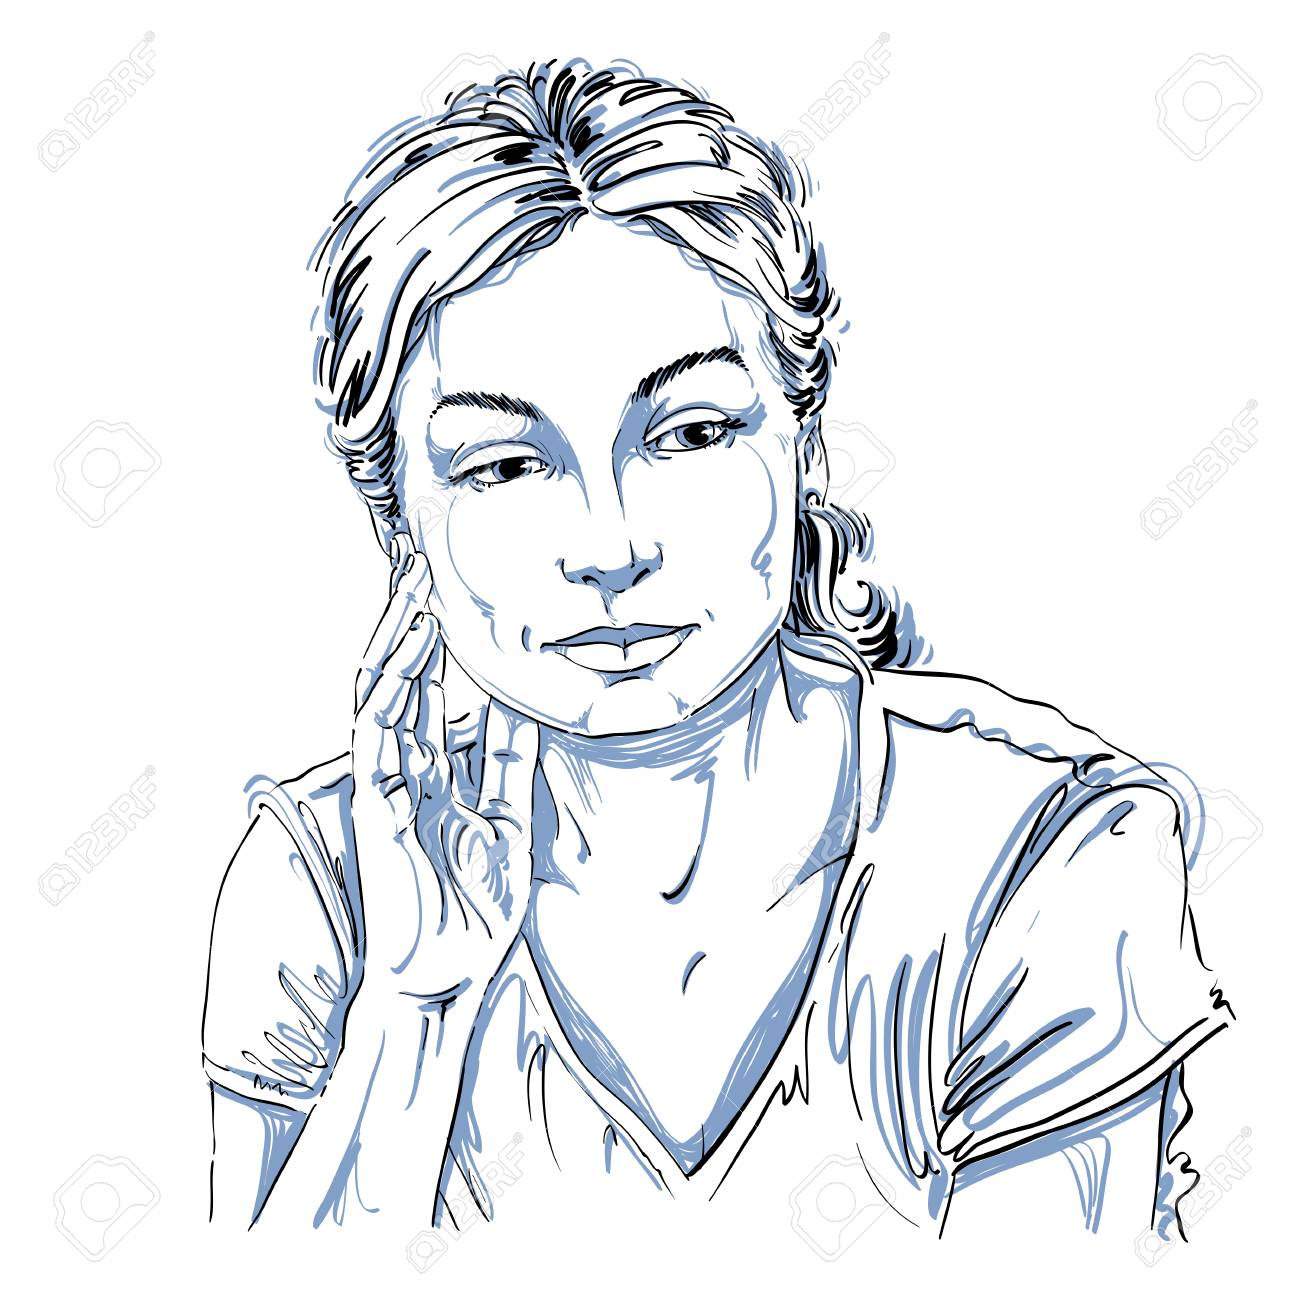 1300x1300 Vector Drawing Of Thinking Woman With Stylish Haircut. Black